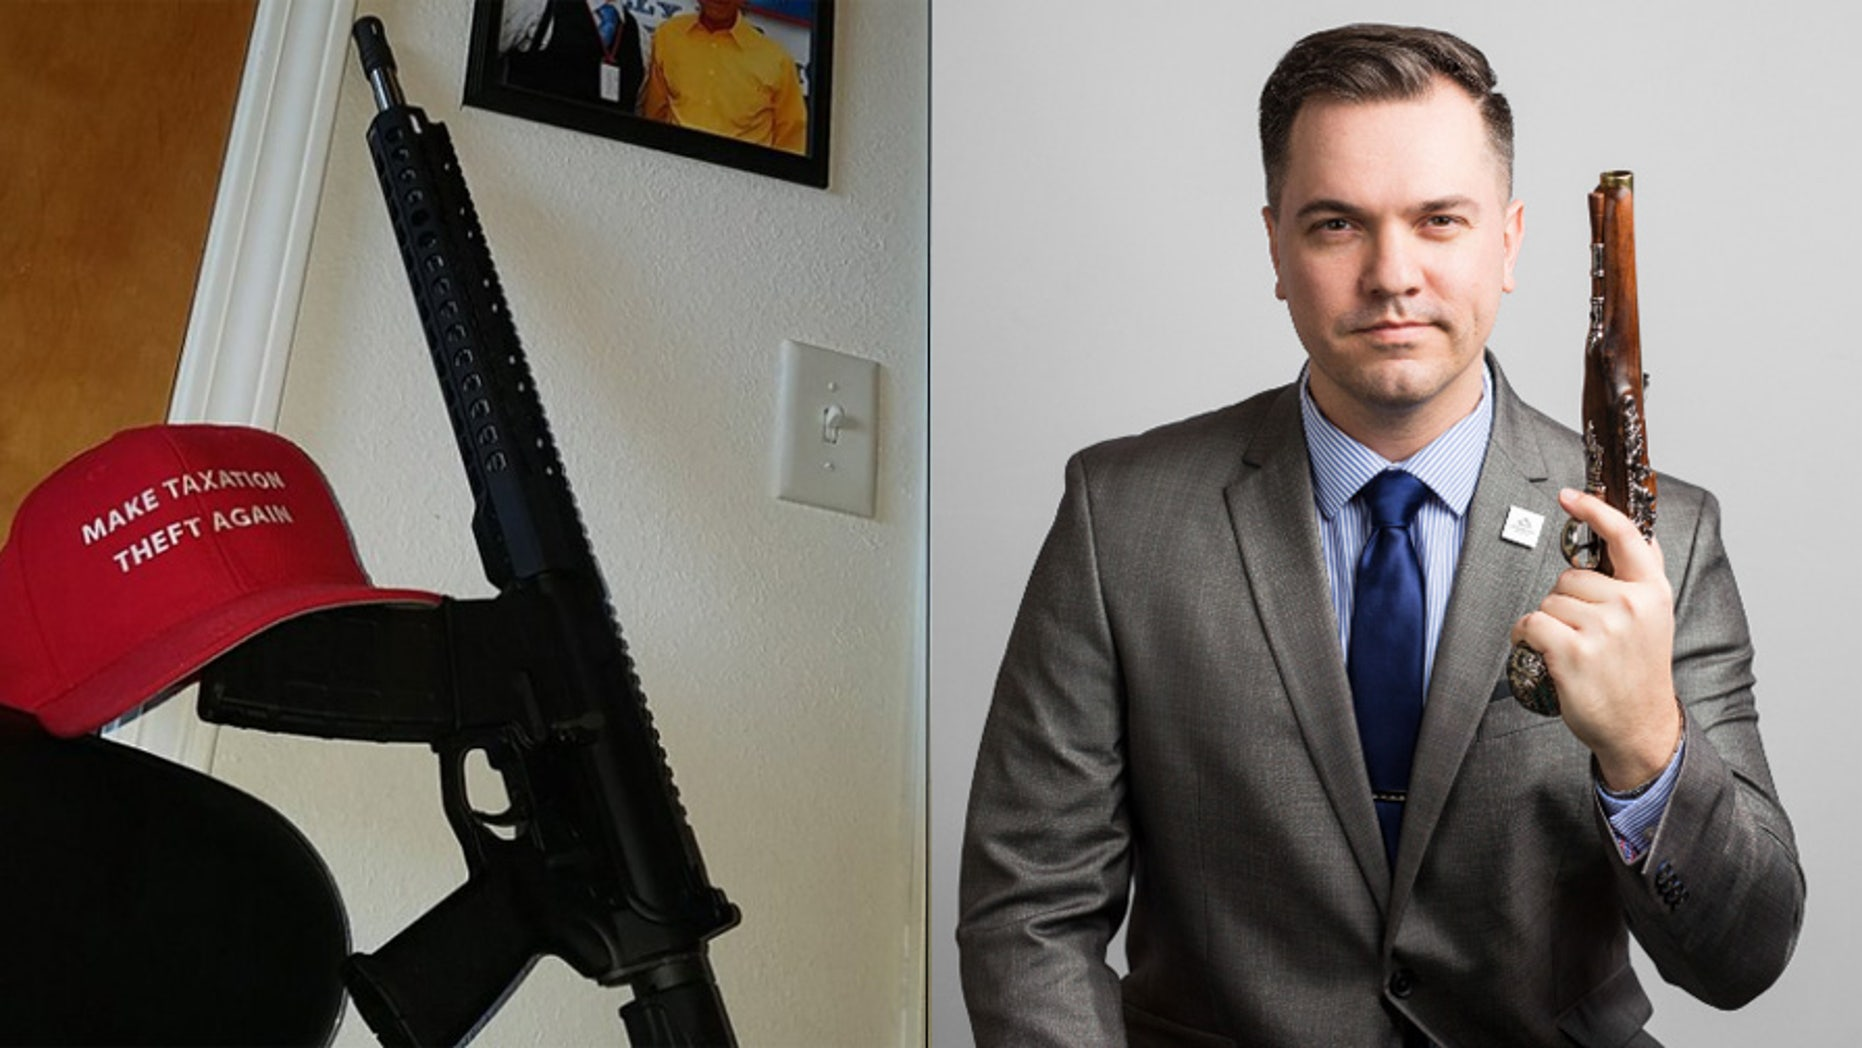 Austin Petersen, a Republican Senate candidate in Missouri, says Facebook has banned him from using the social network for 30 days because he used the site to promote his campaign's AR-15 giveaway.